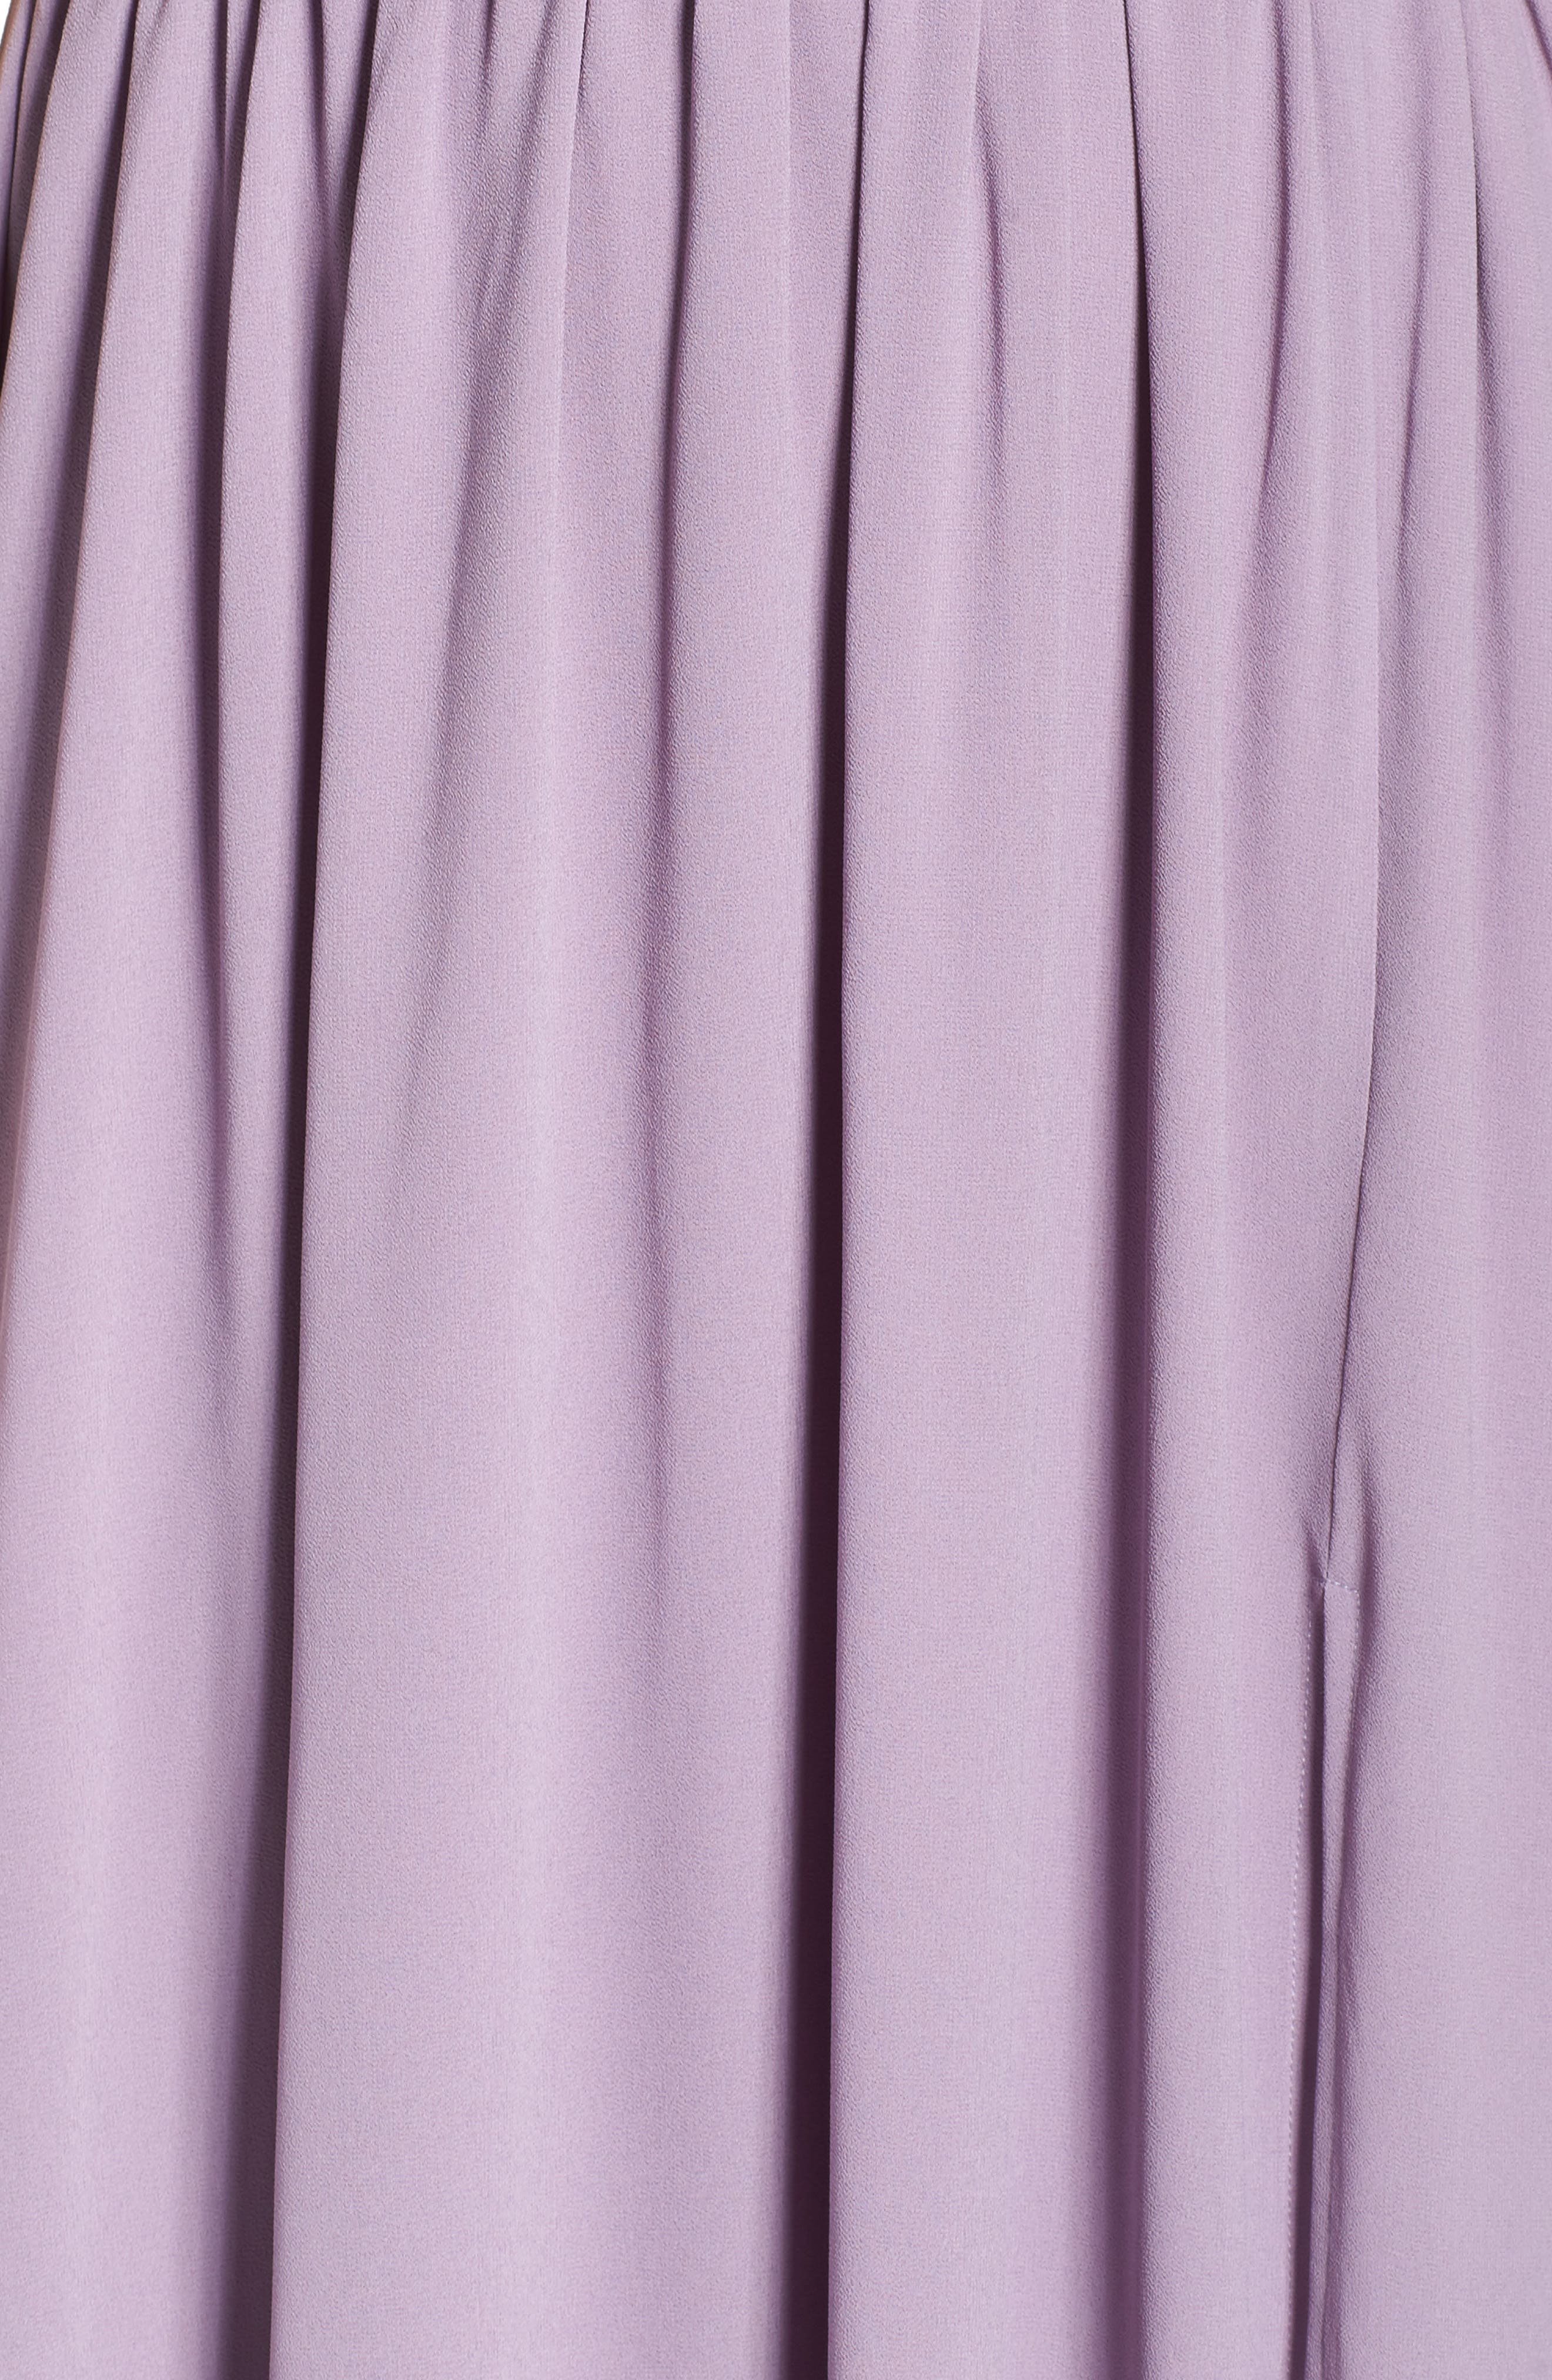 LULUS, Plunging V-Neck Chiffon Gown, Alternate thumbnail 6, color, DUSTY VIOLET